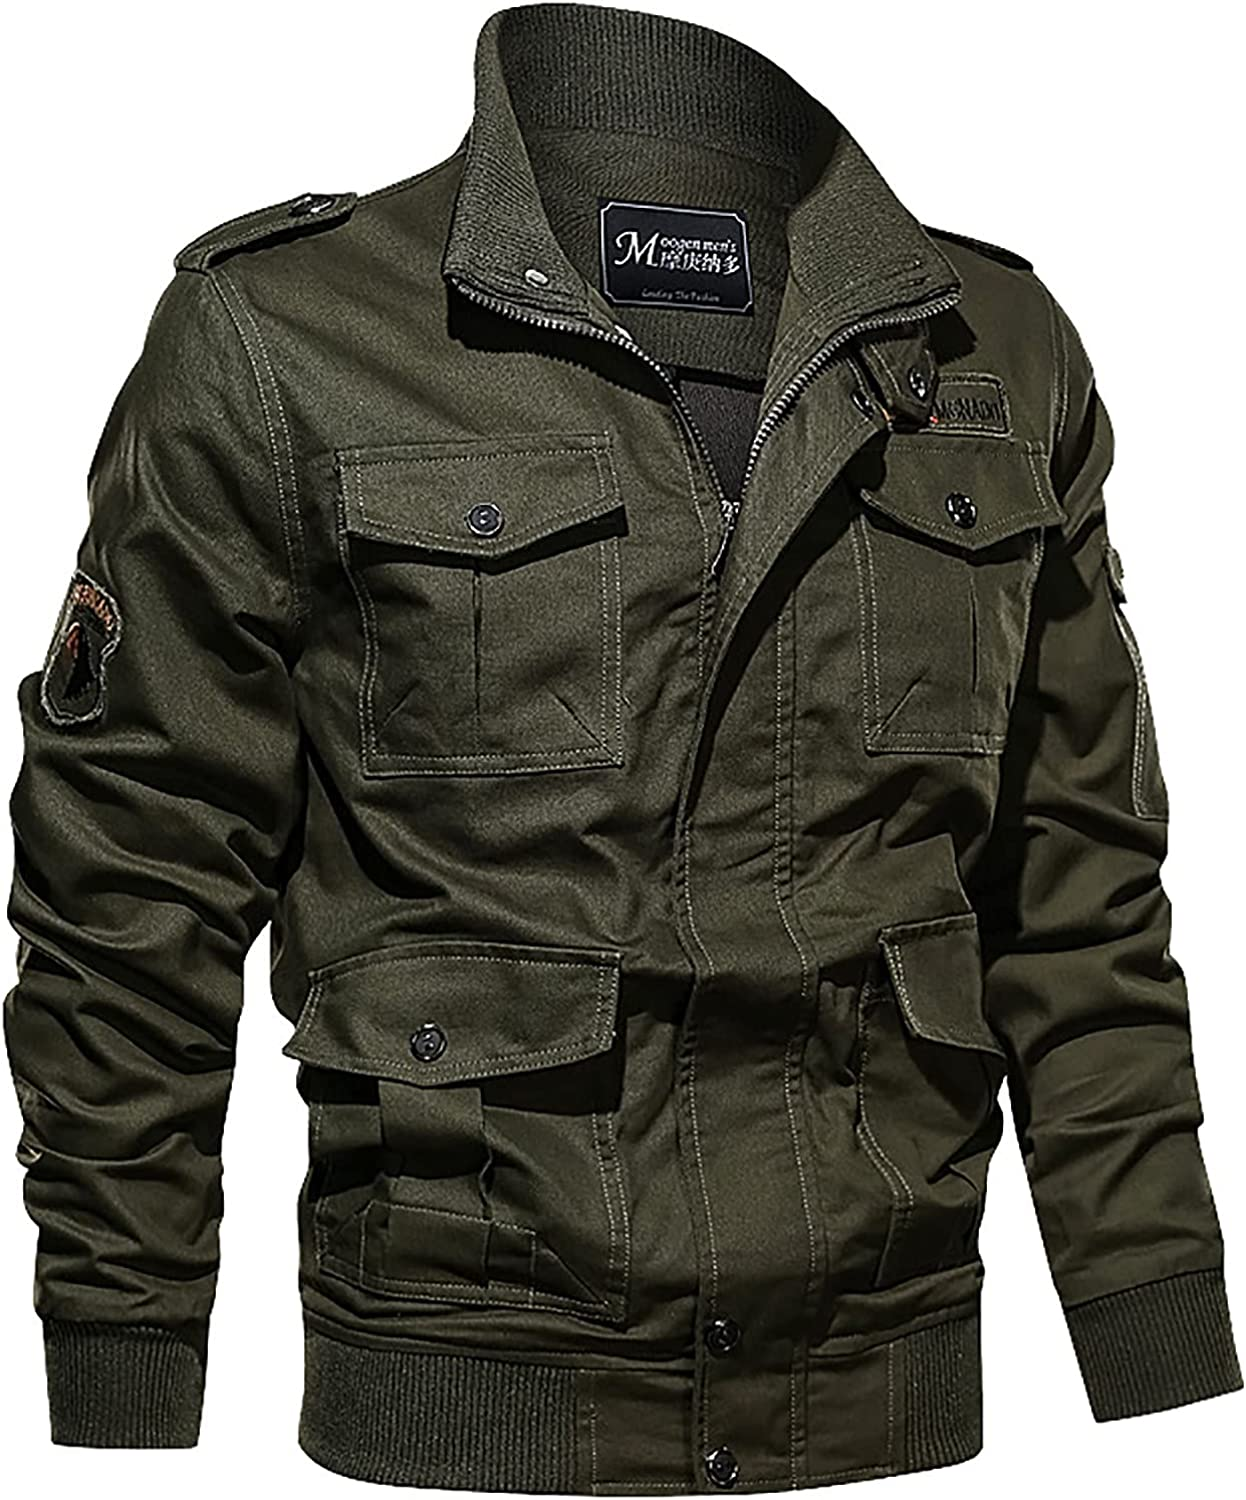 Men's Military Classic Vintage Autumn And Winter Casual Solid Color Tooling Wind Jacket Zipper Coat